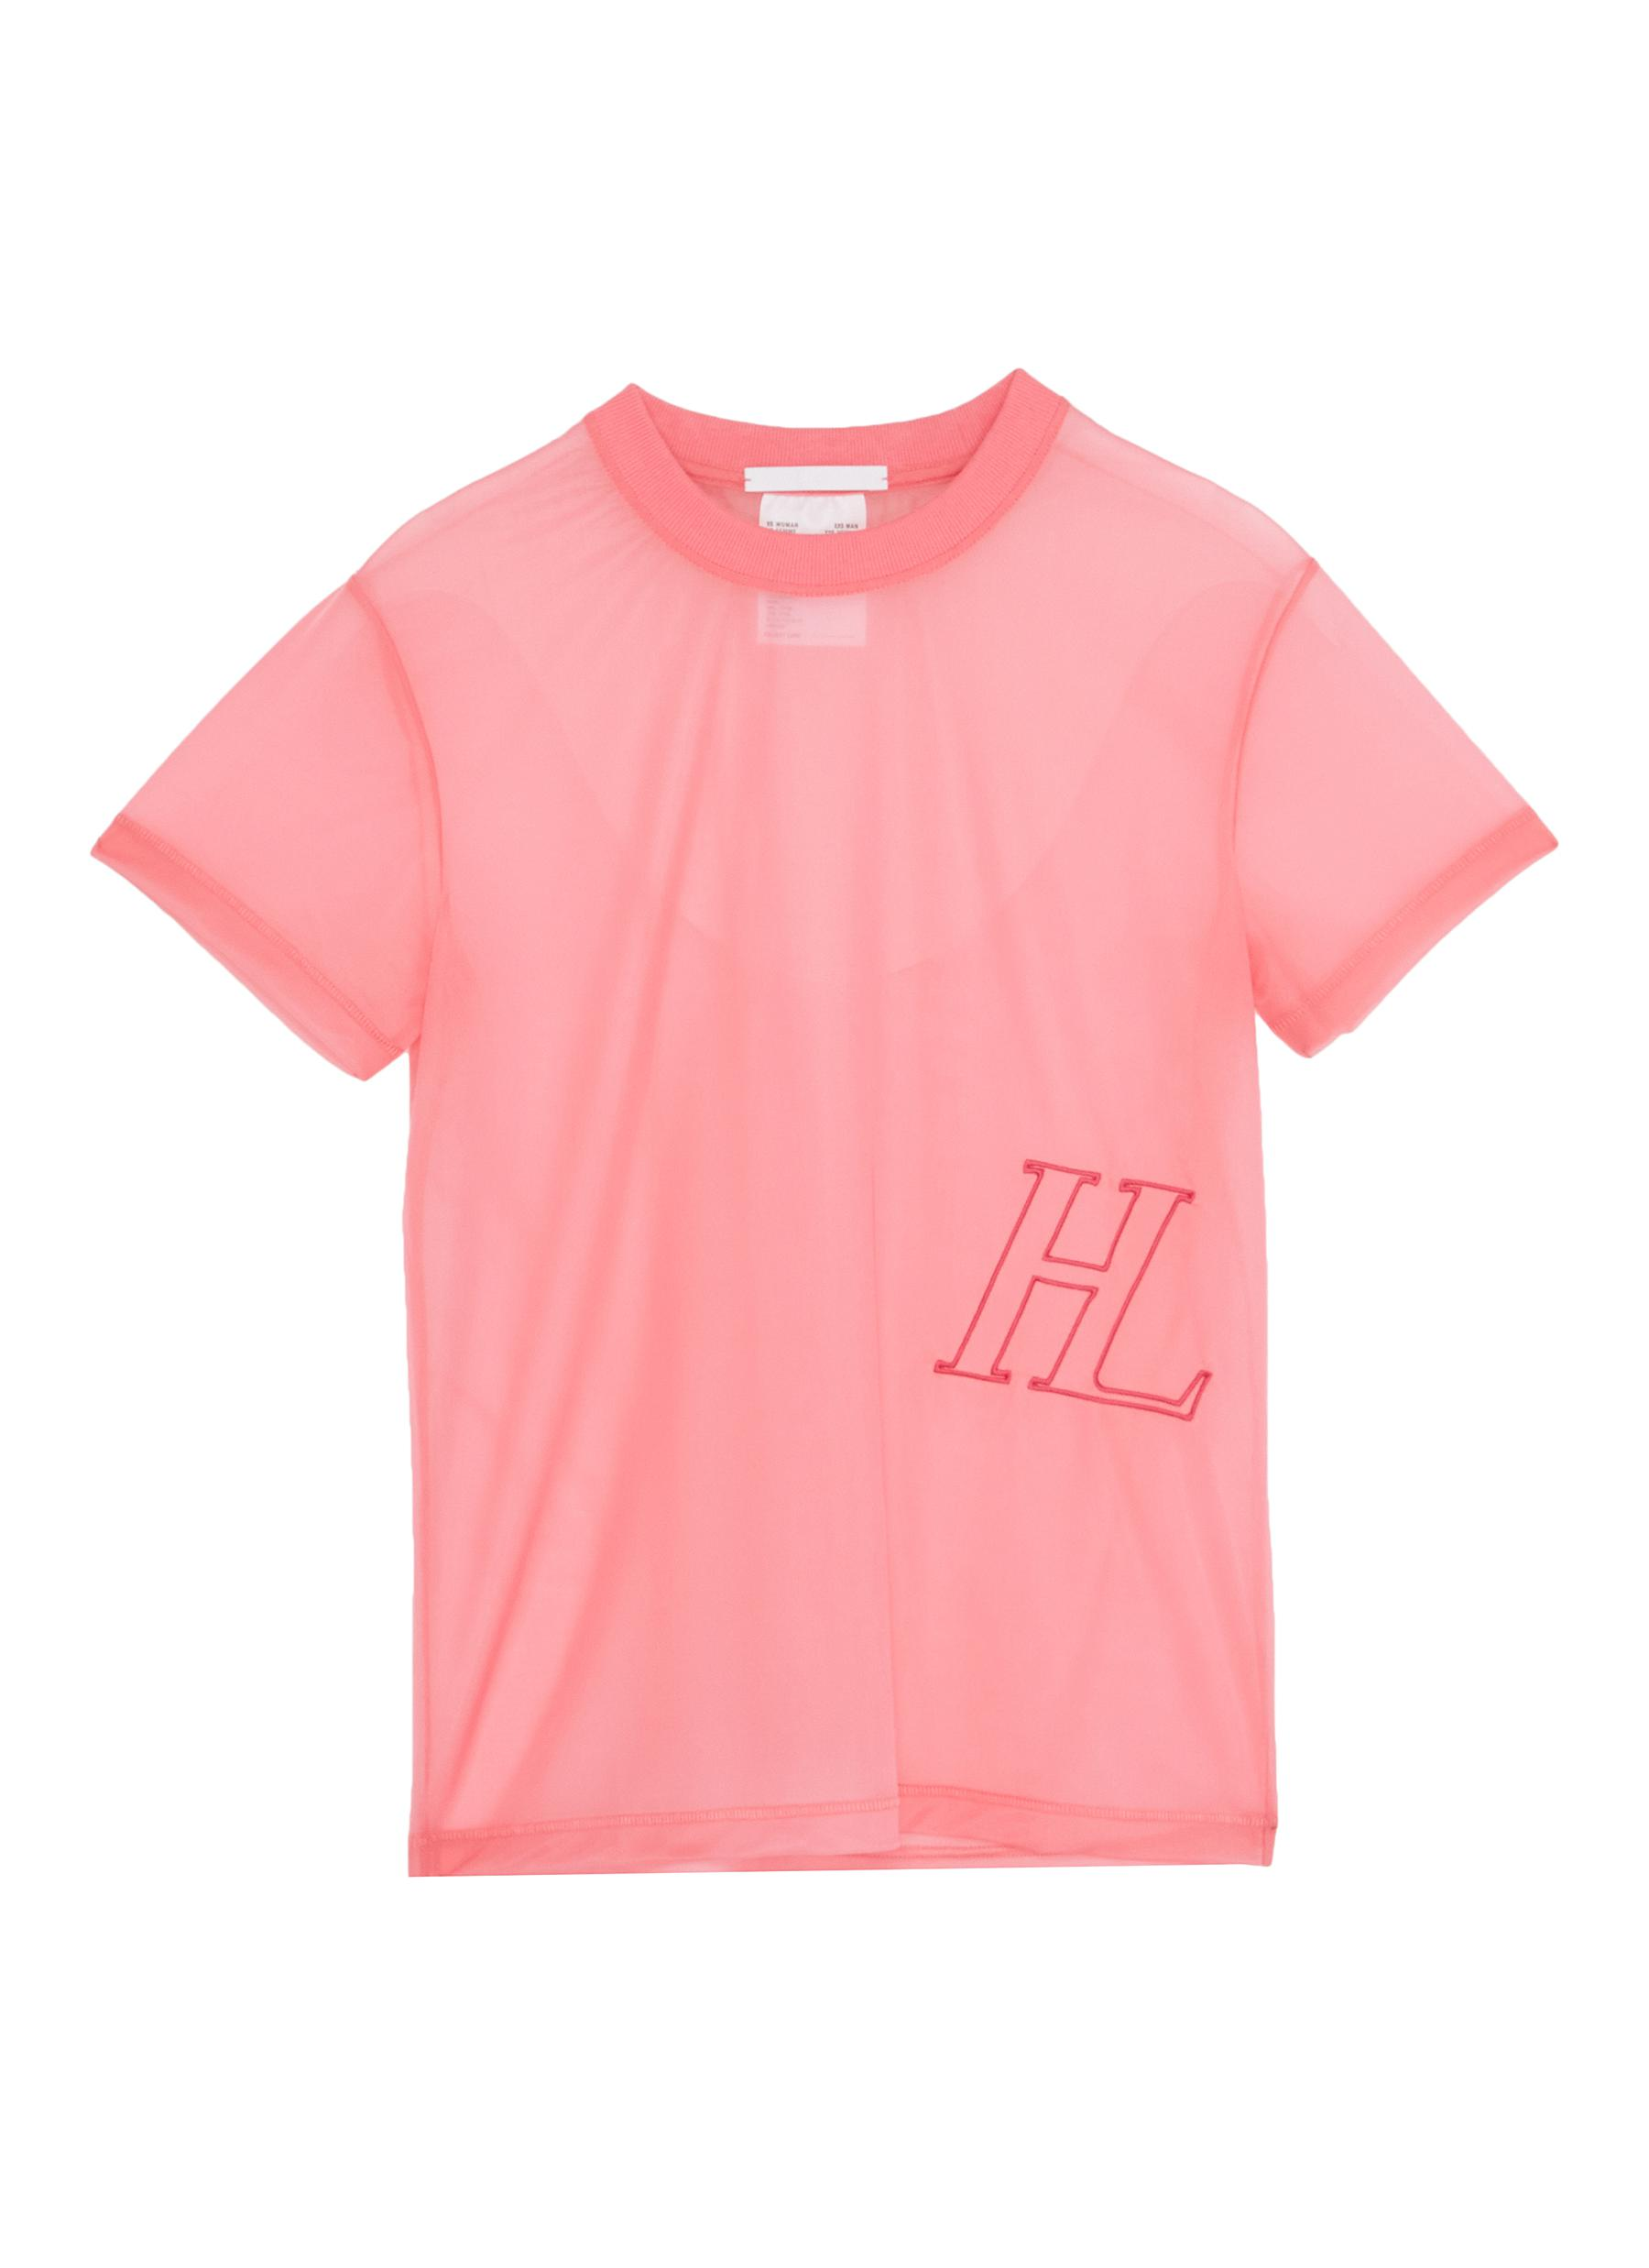 Monogram embroidered mesh T-shirt by Helmut Lang